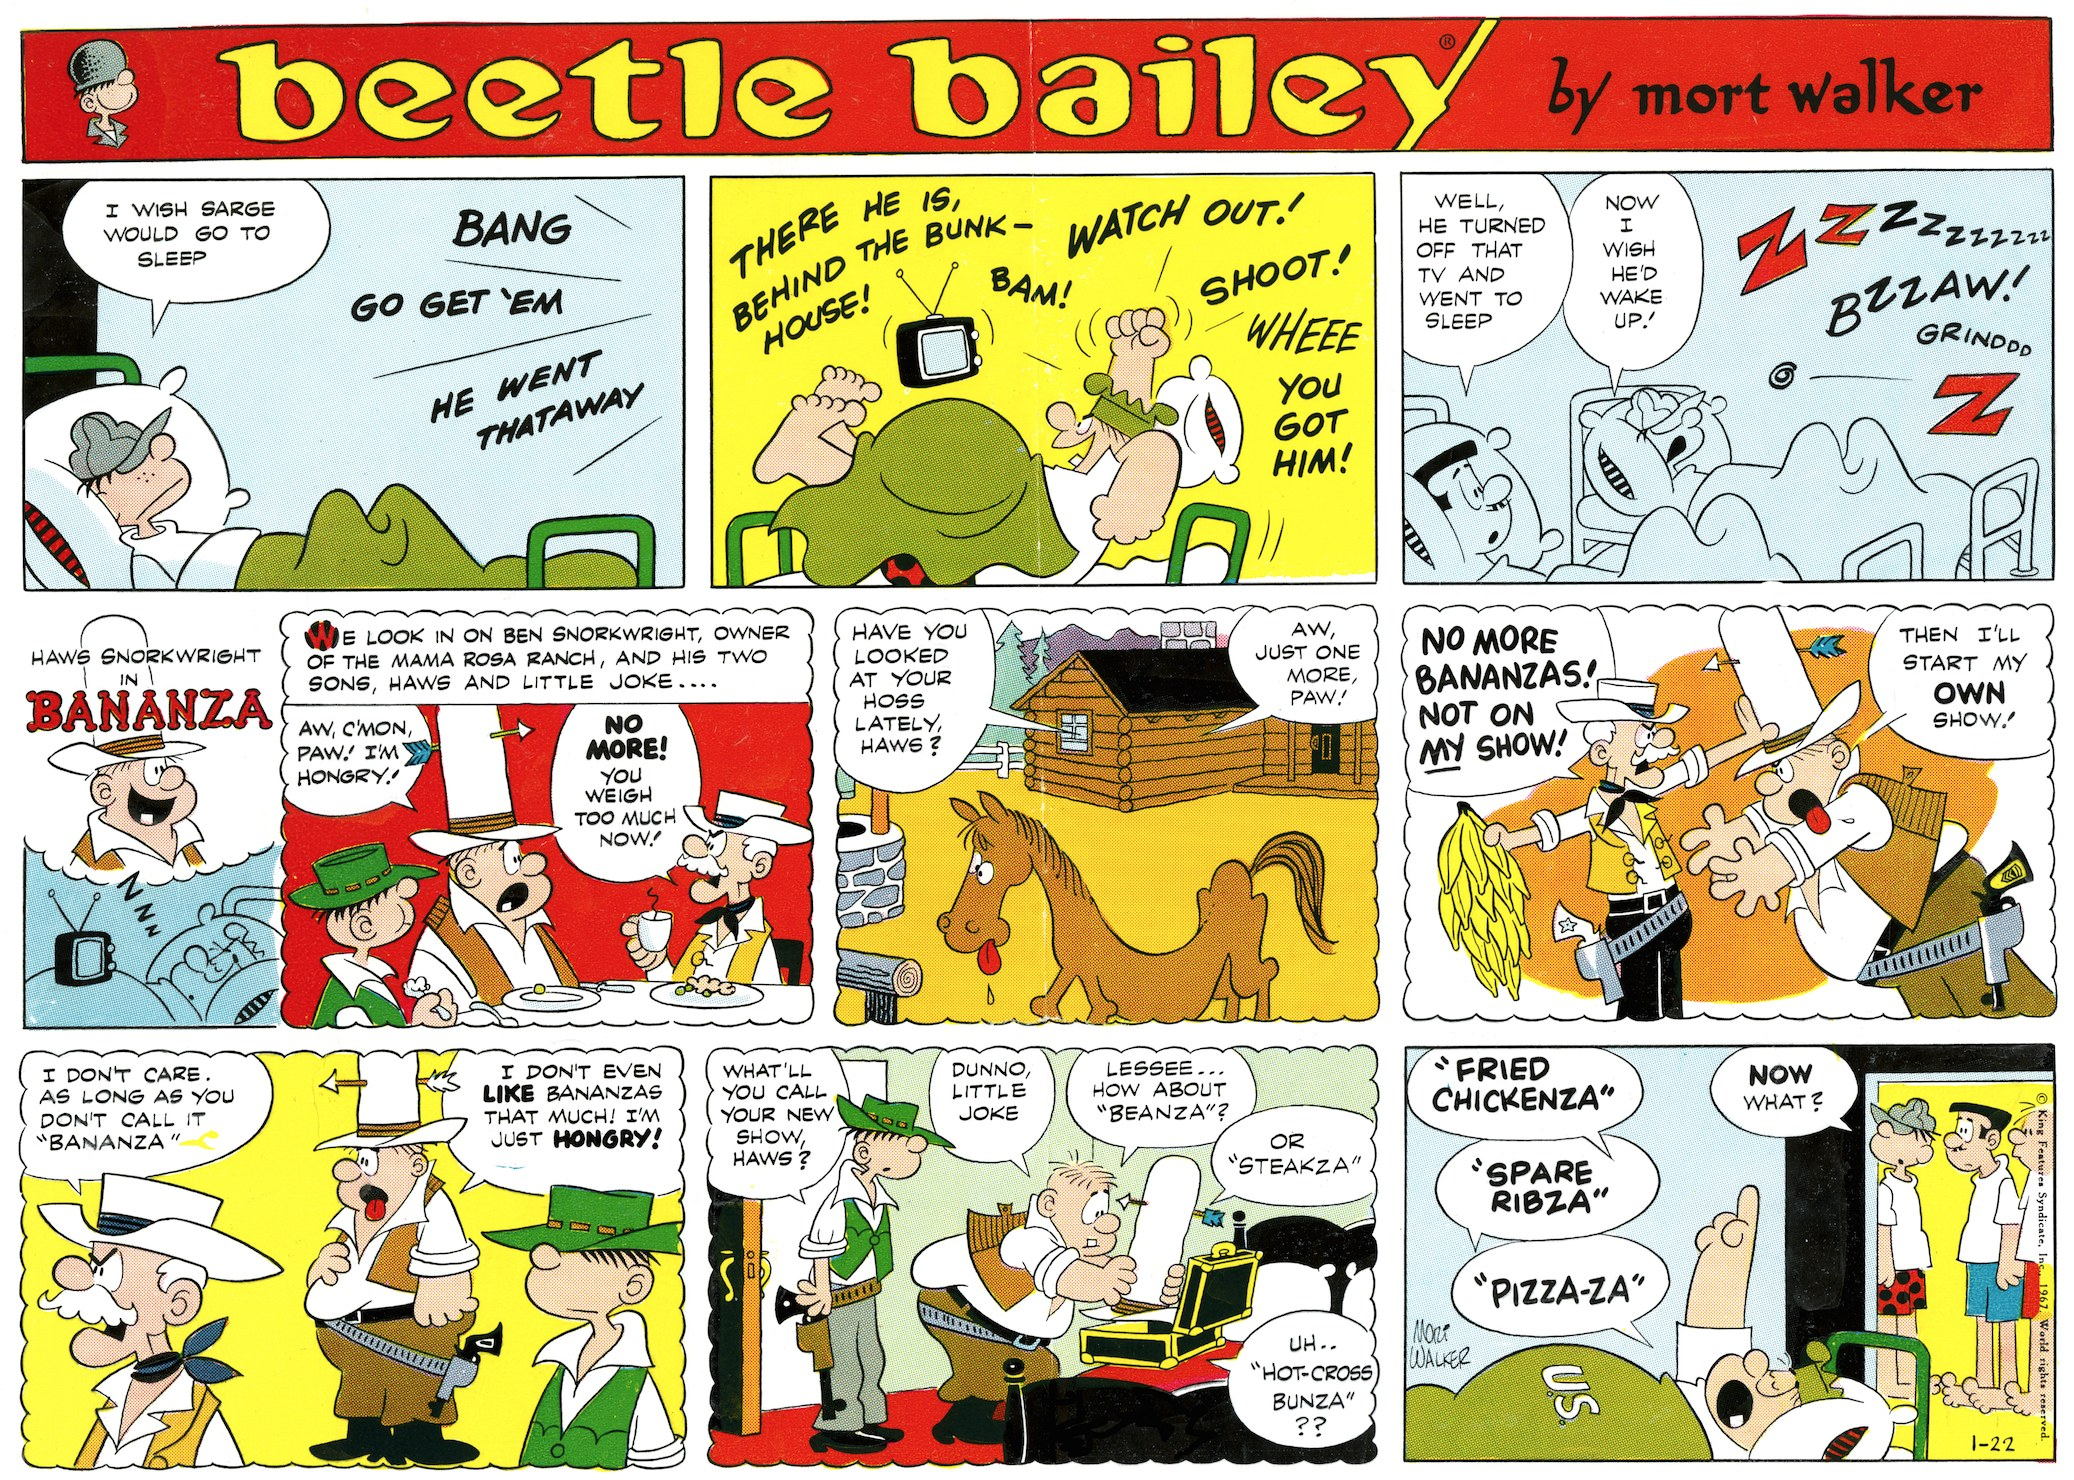 Beetle Bailey Sunday page color proof, January 22, 1967.